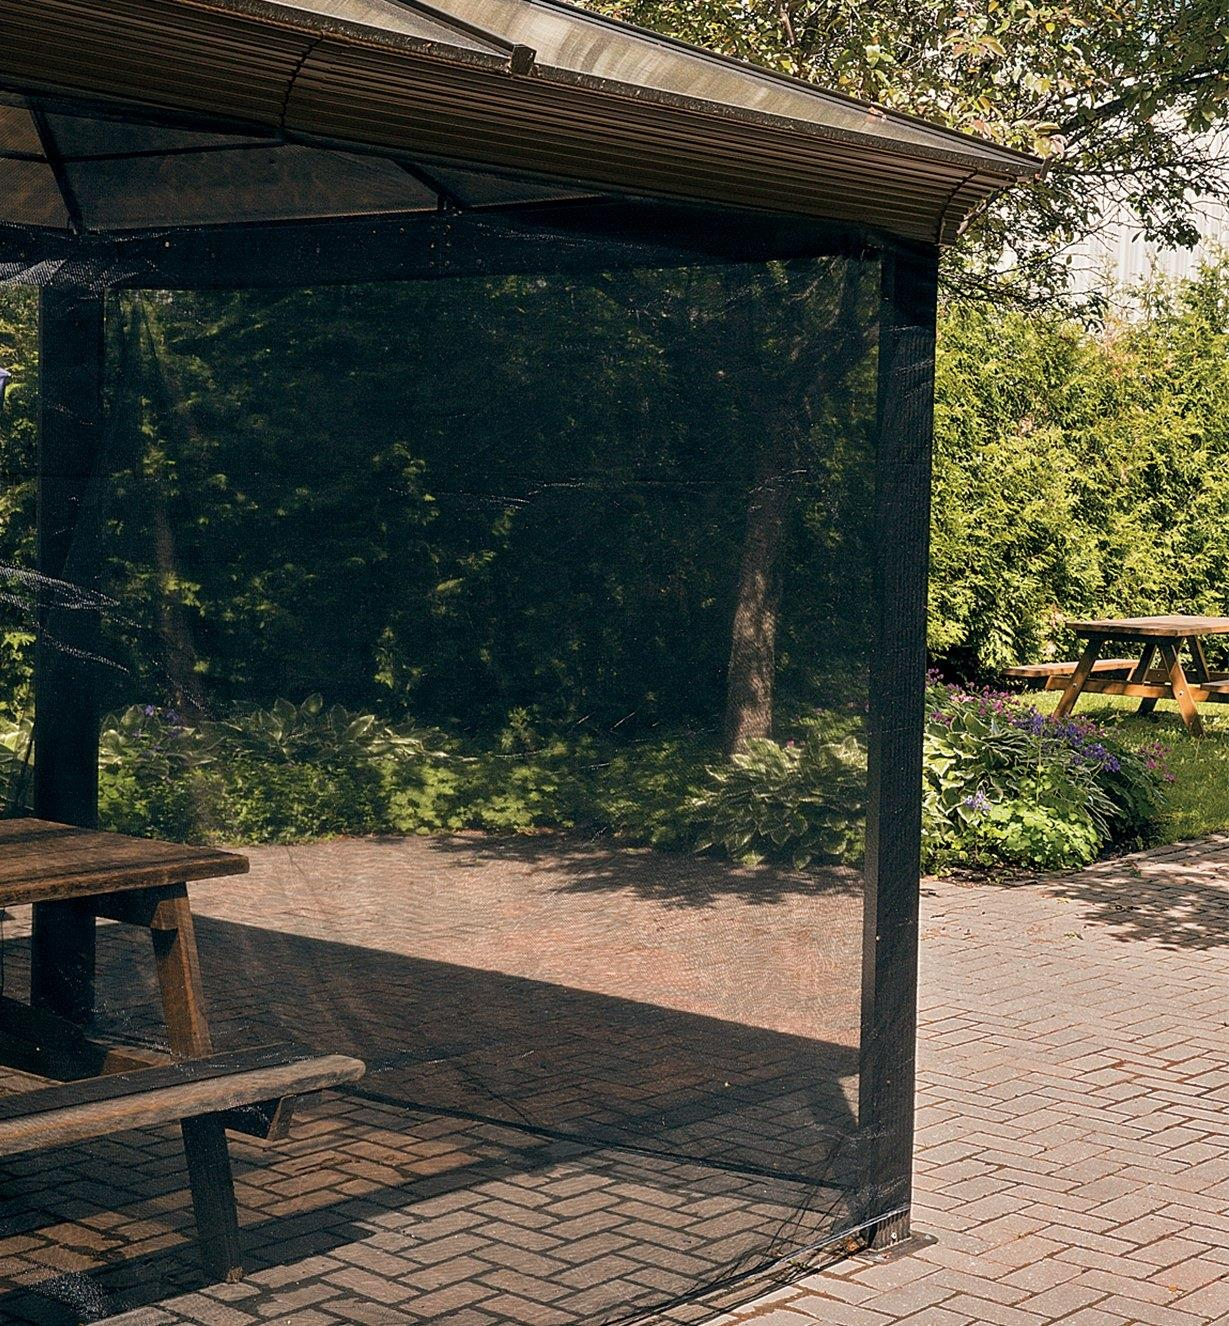 Mosquito Netting used as a screen around a picnic shelter